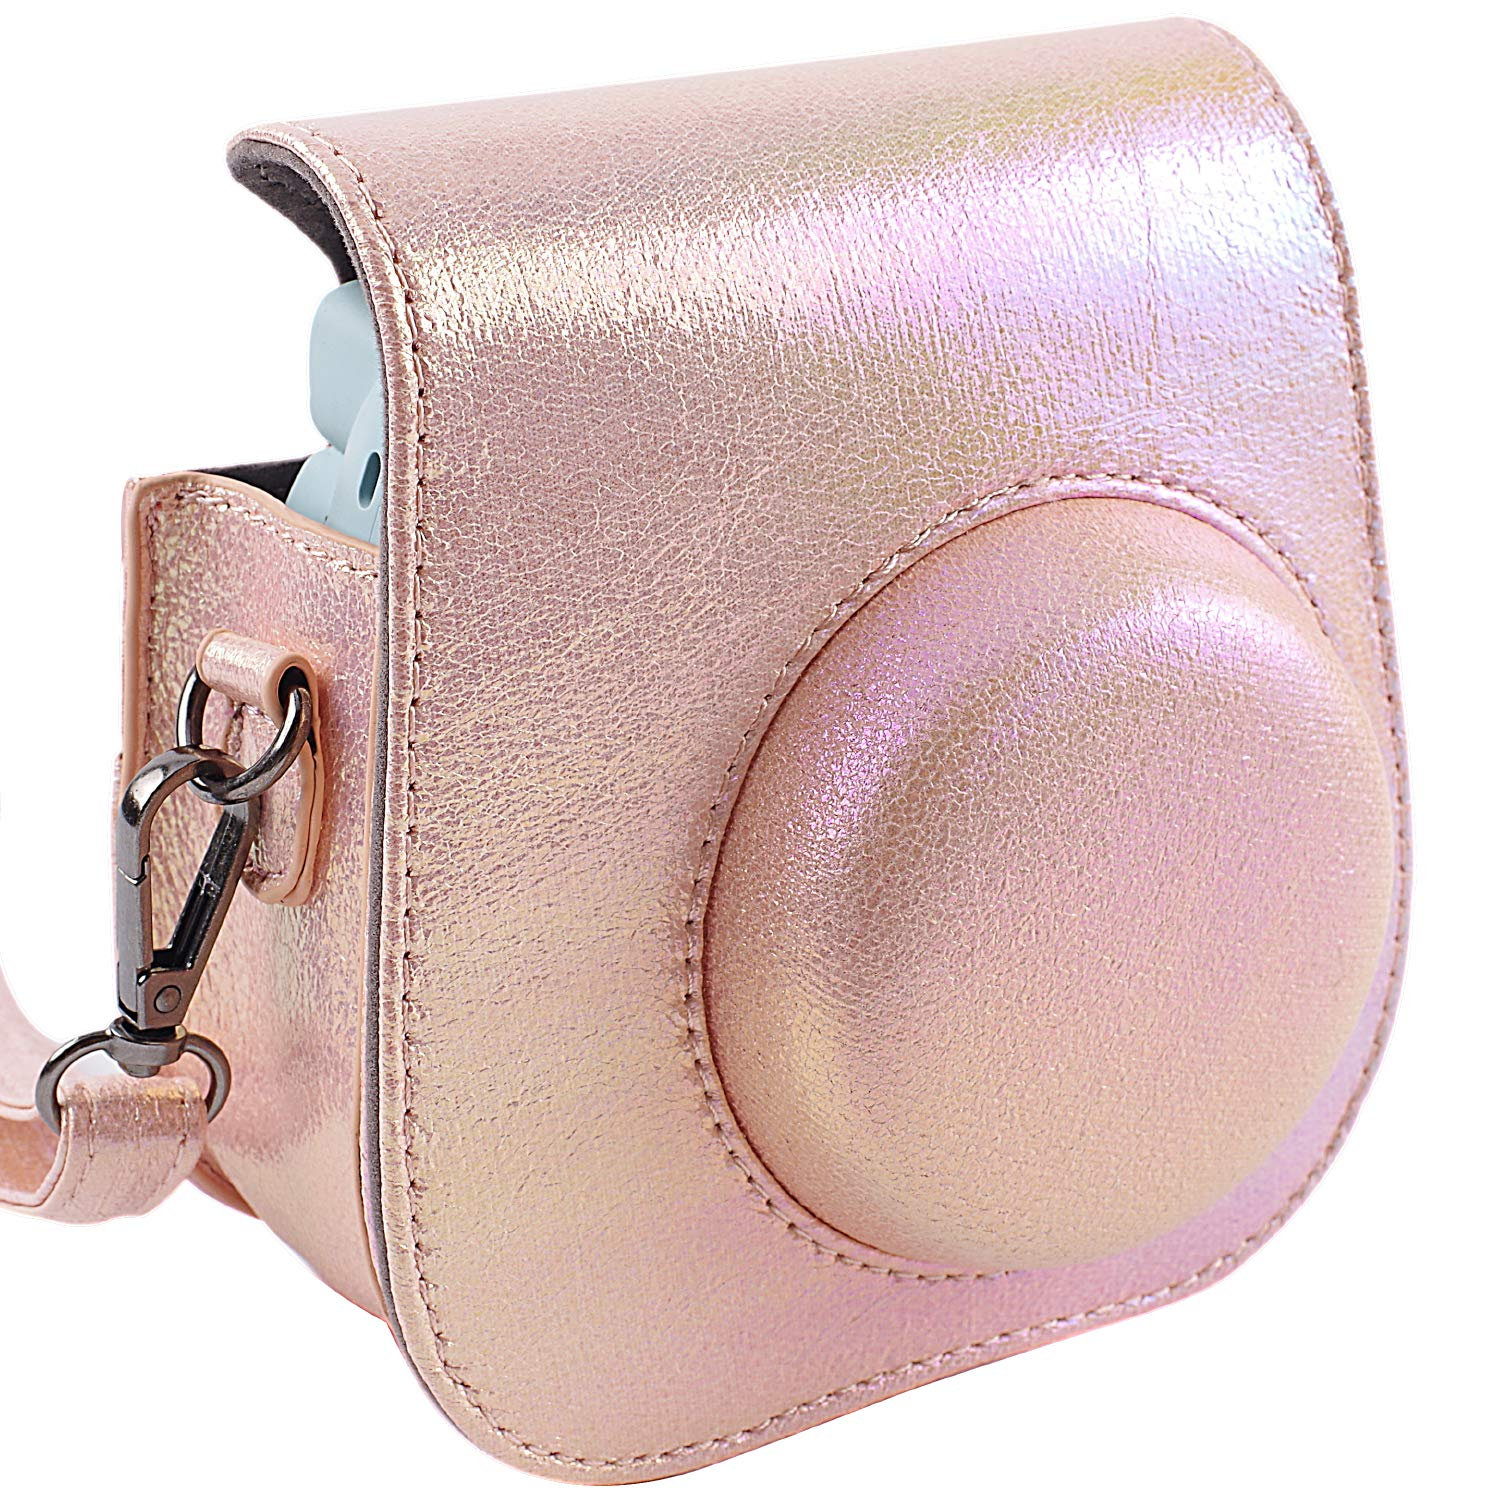 Protective & Portable Case Compatible with fujifilm instax Mini 11/9/ 8/8+ Instant Film Camera with Accessory Pocket and Adjustable Strap - Shining Pink by SAIKA